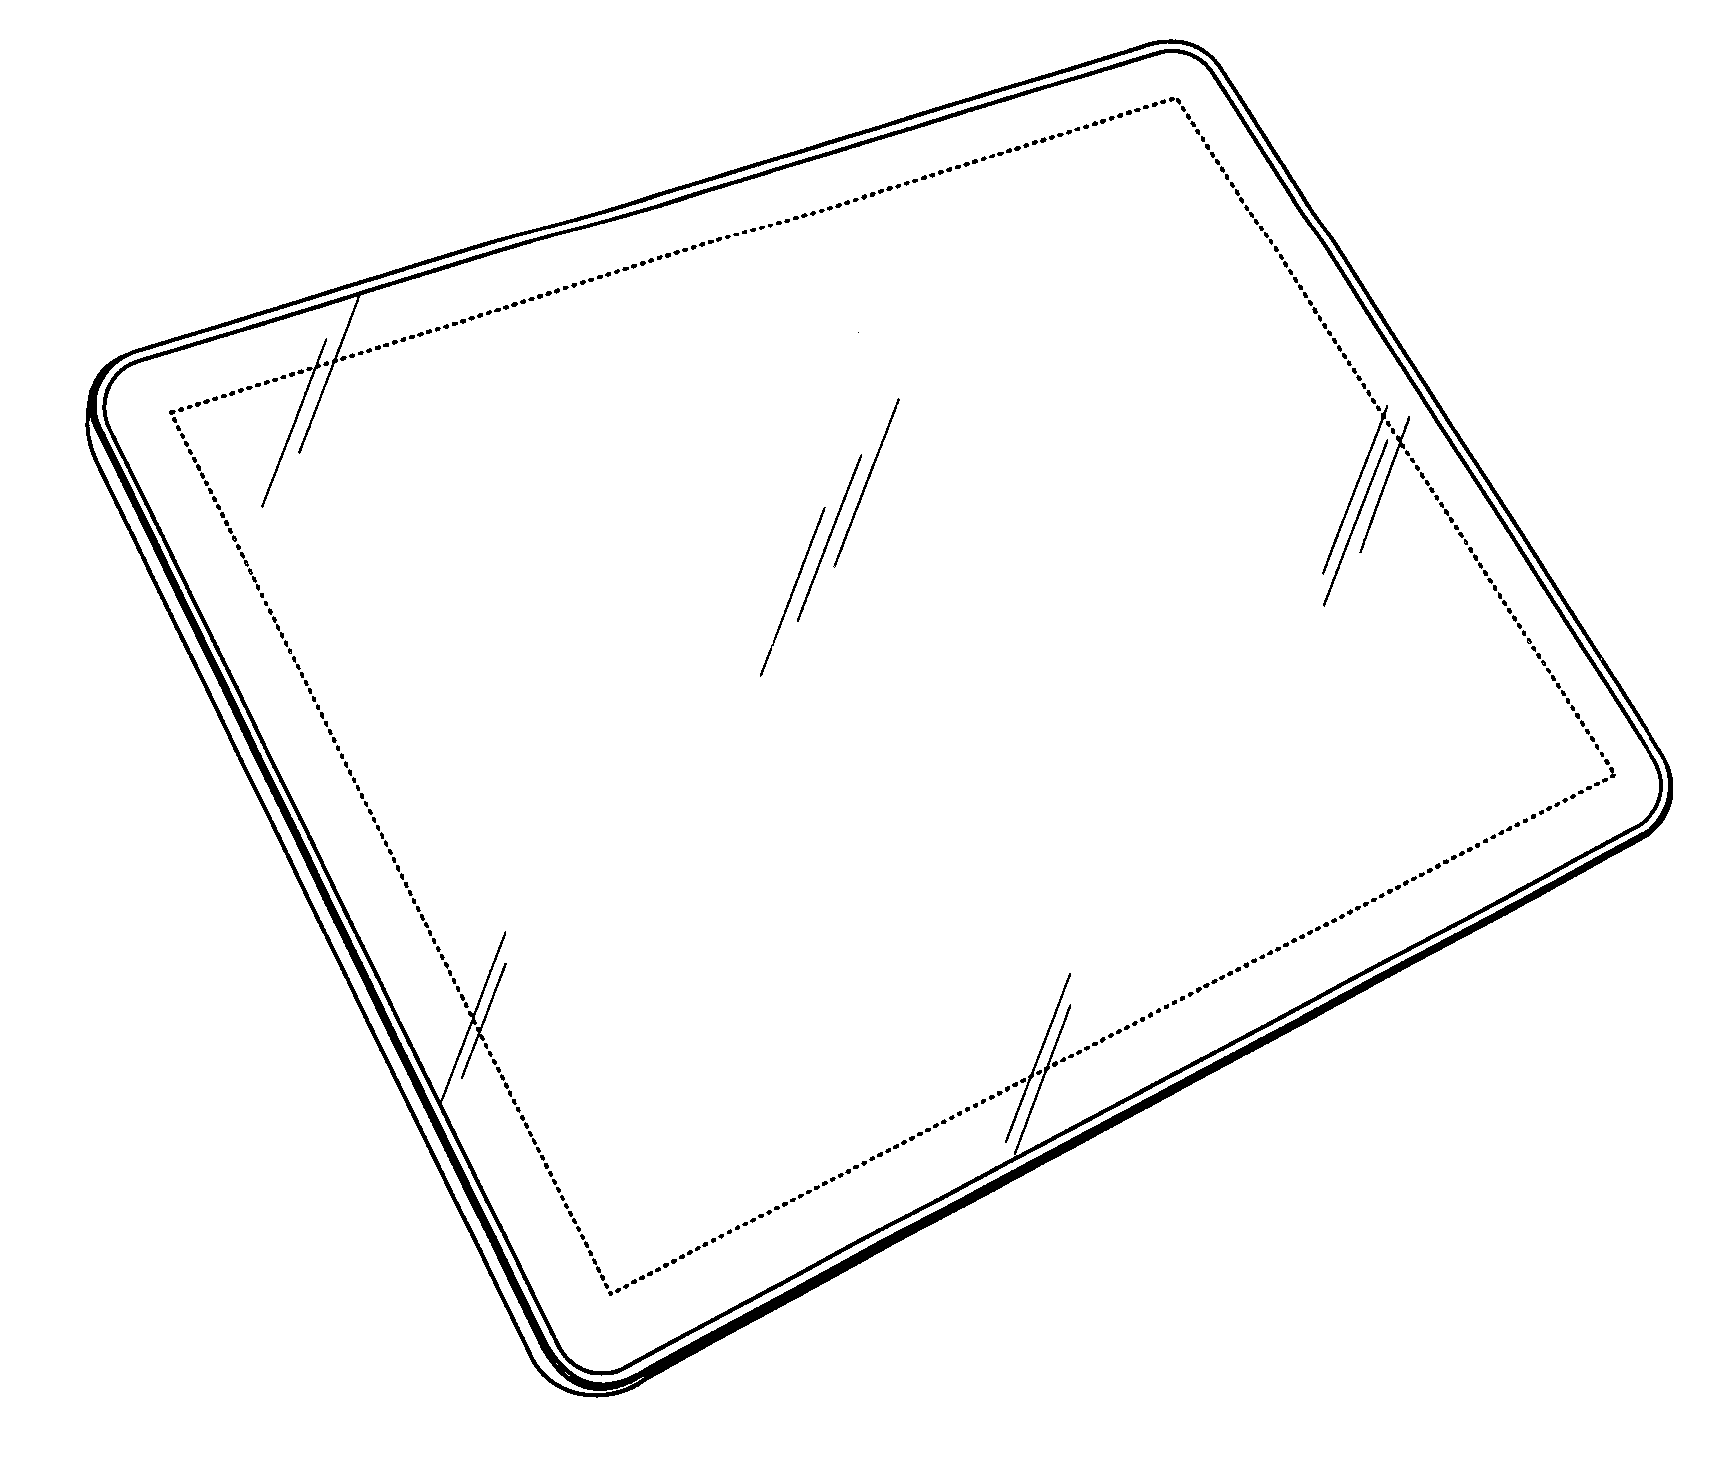 US-D504889-S1 Electronic device